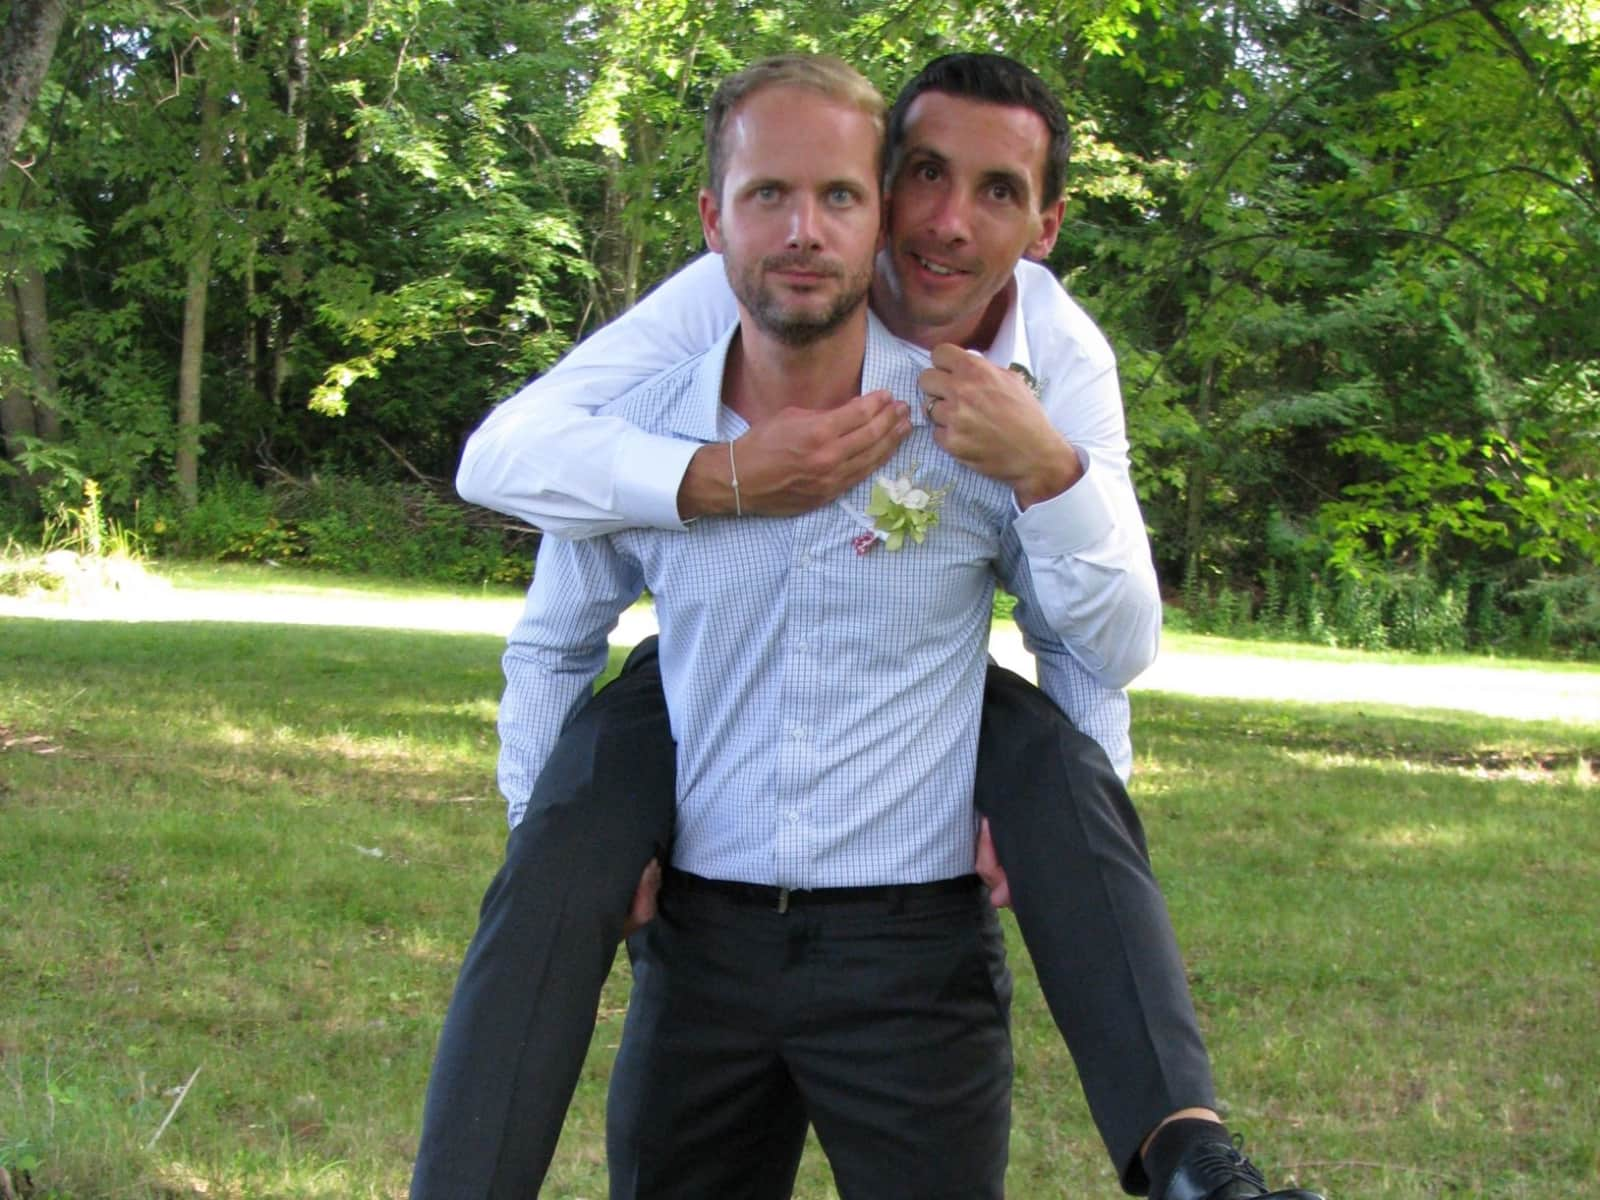 Michael & James from Oxford, United Kingdom